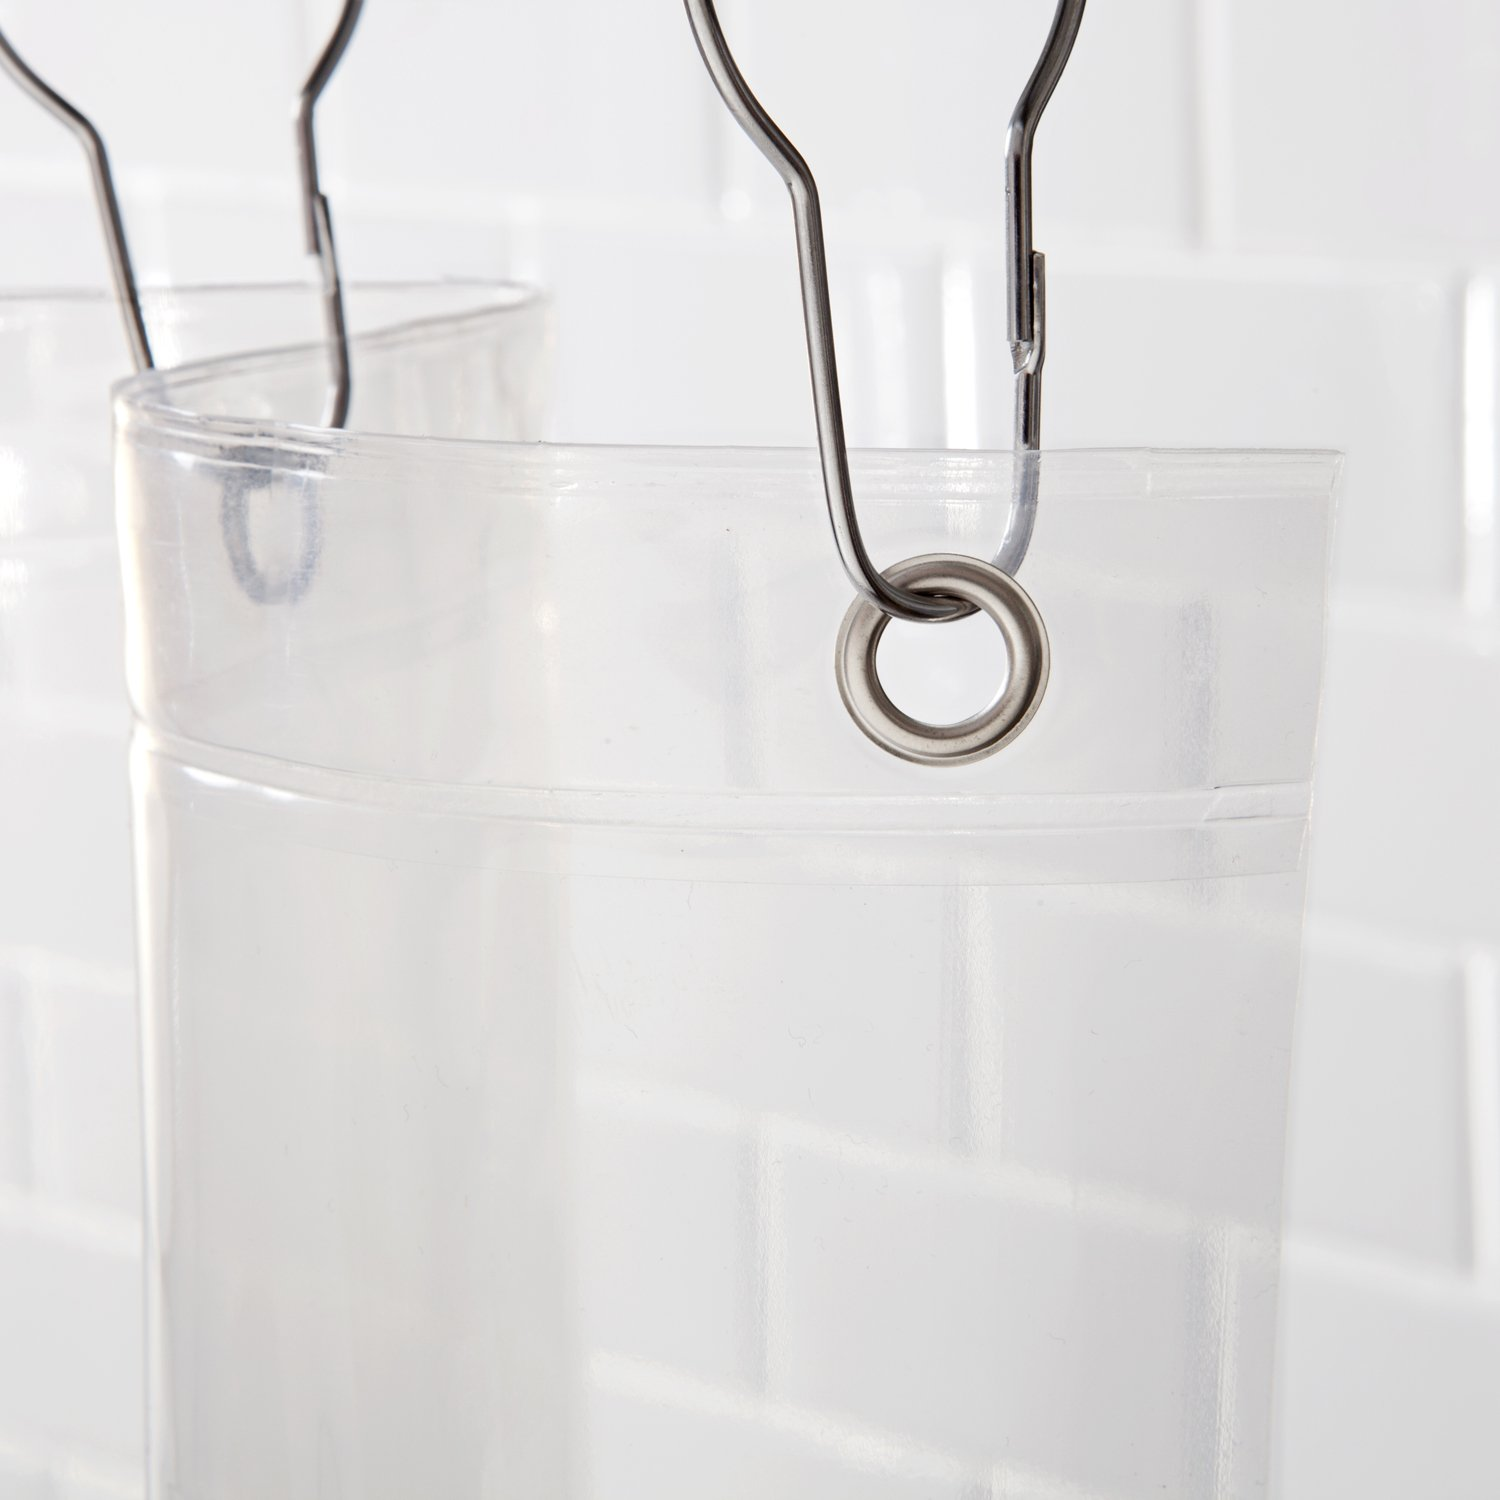 Kenney Manufacturing Company Peva 8-Gauge Clear Shower Liner 70 by 72-Inch